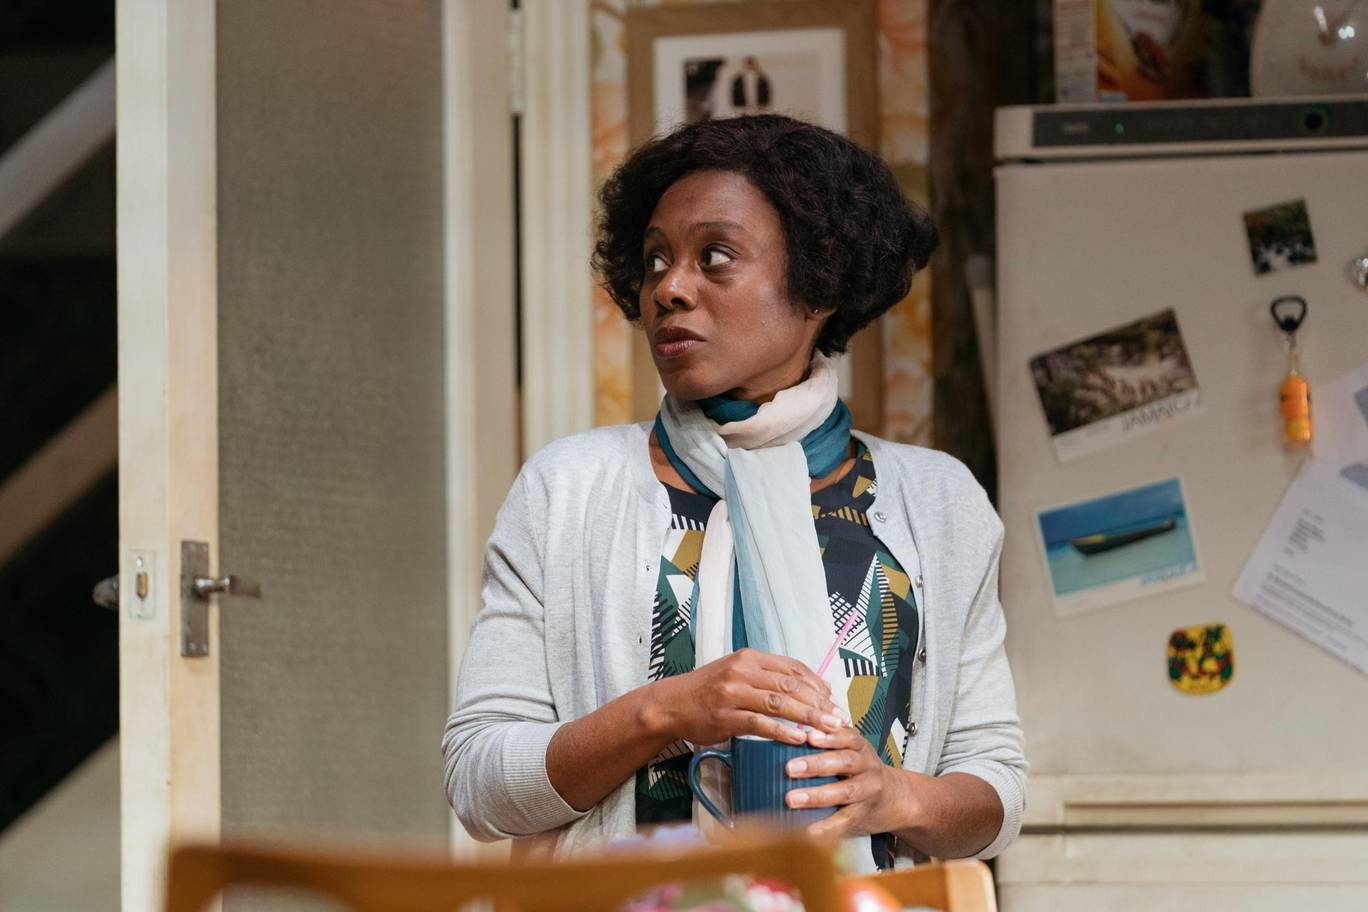 Natasha Gordon's Nine Night reminds us why it's important to support new playwrights